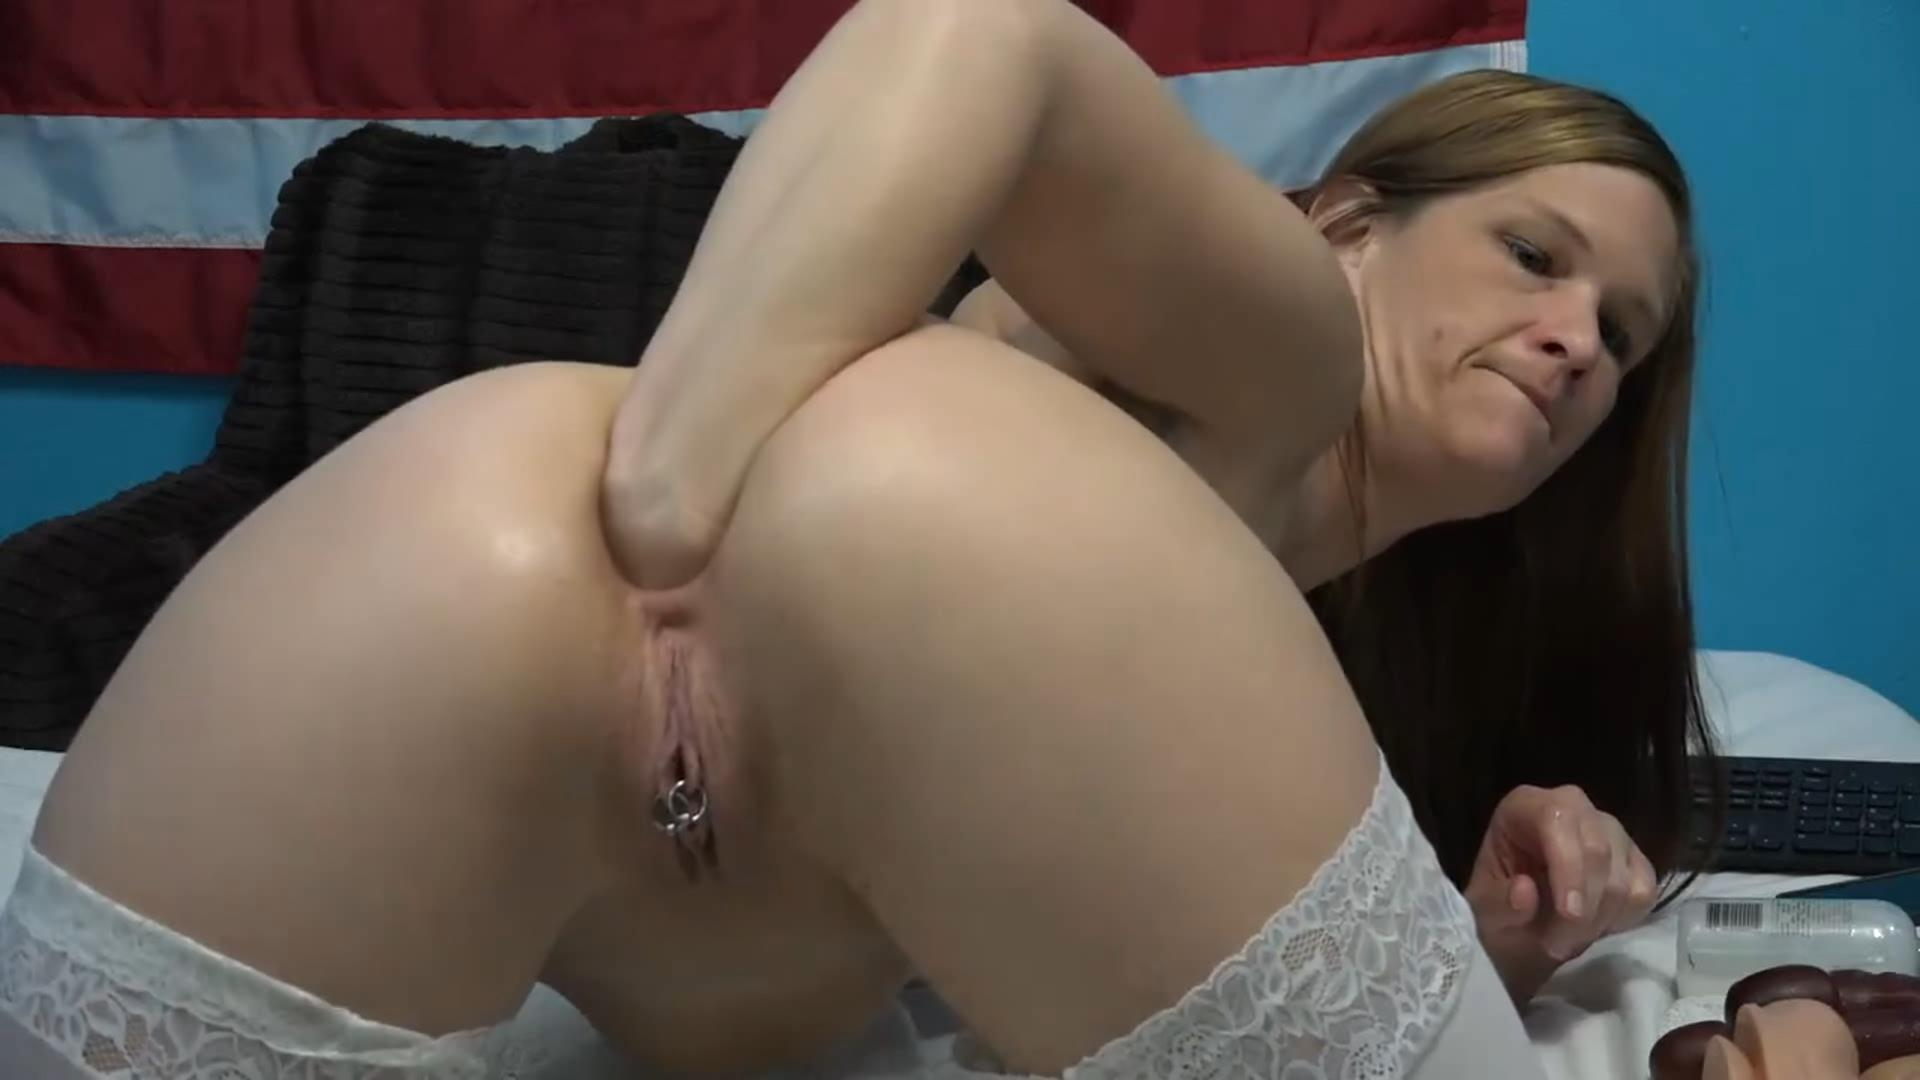 Streaming deepthroat blowjob videos